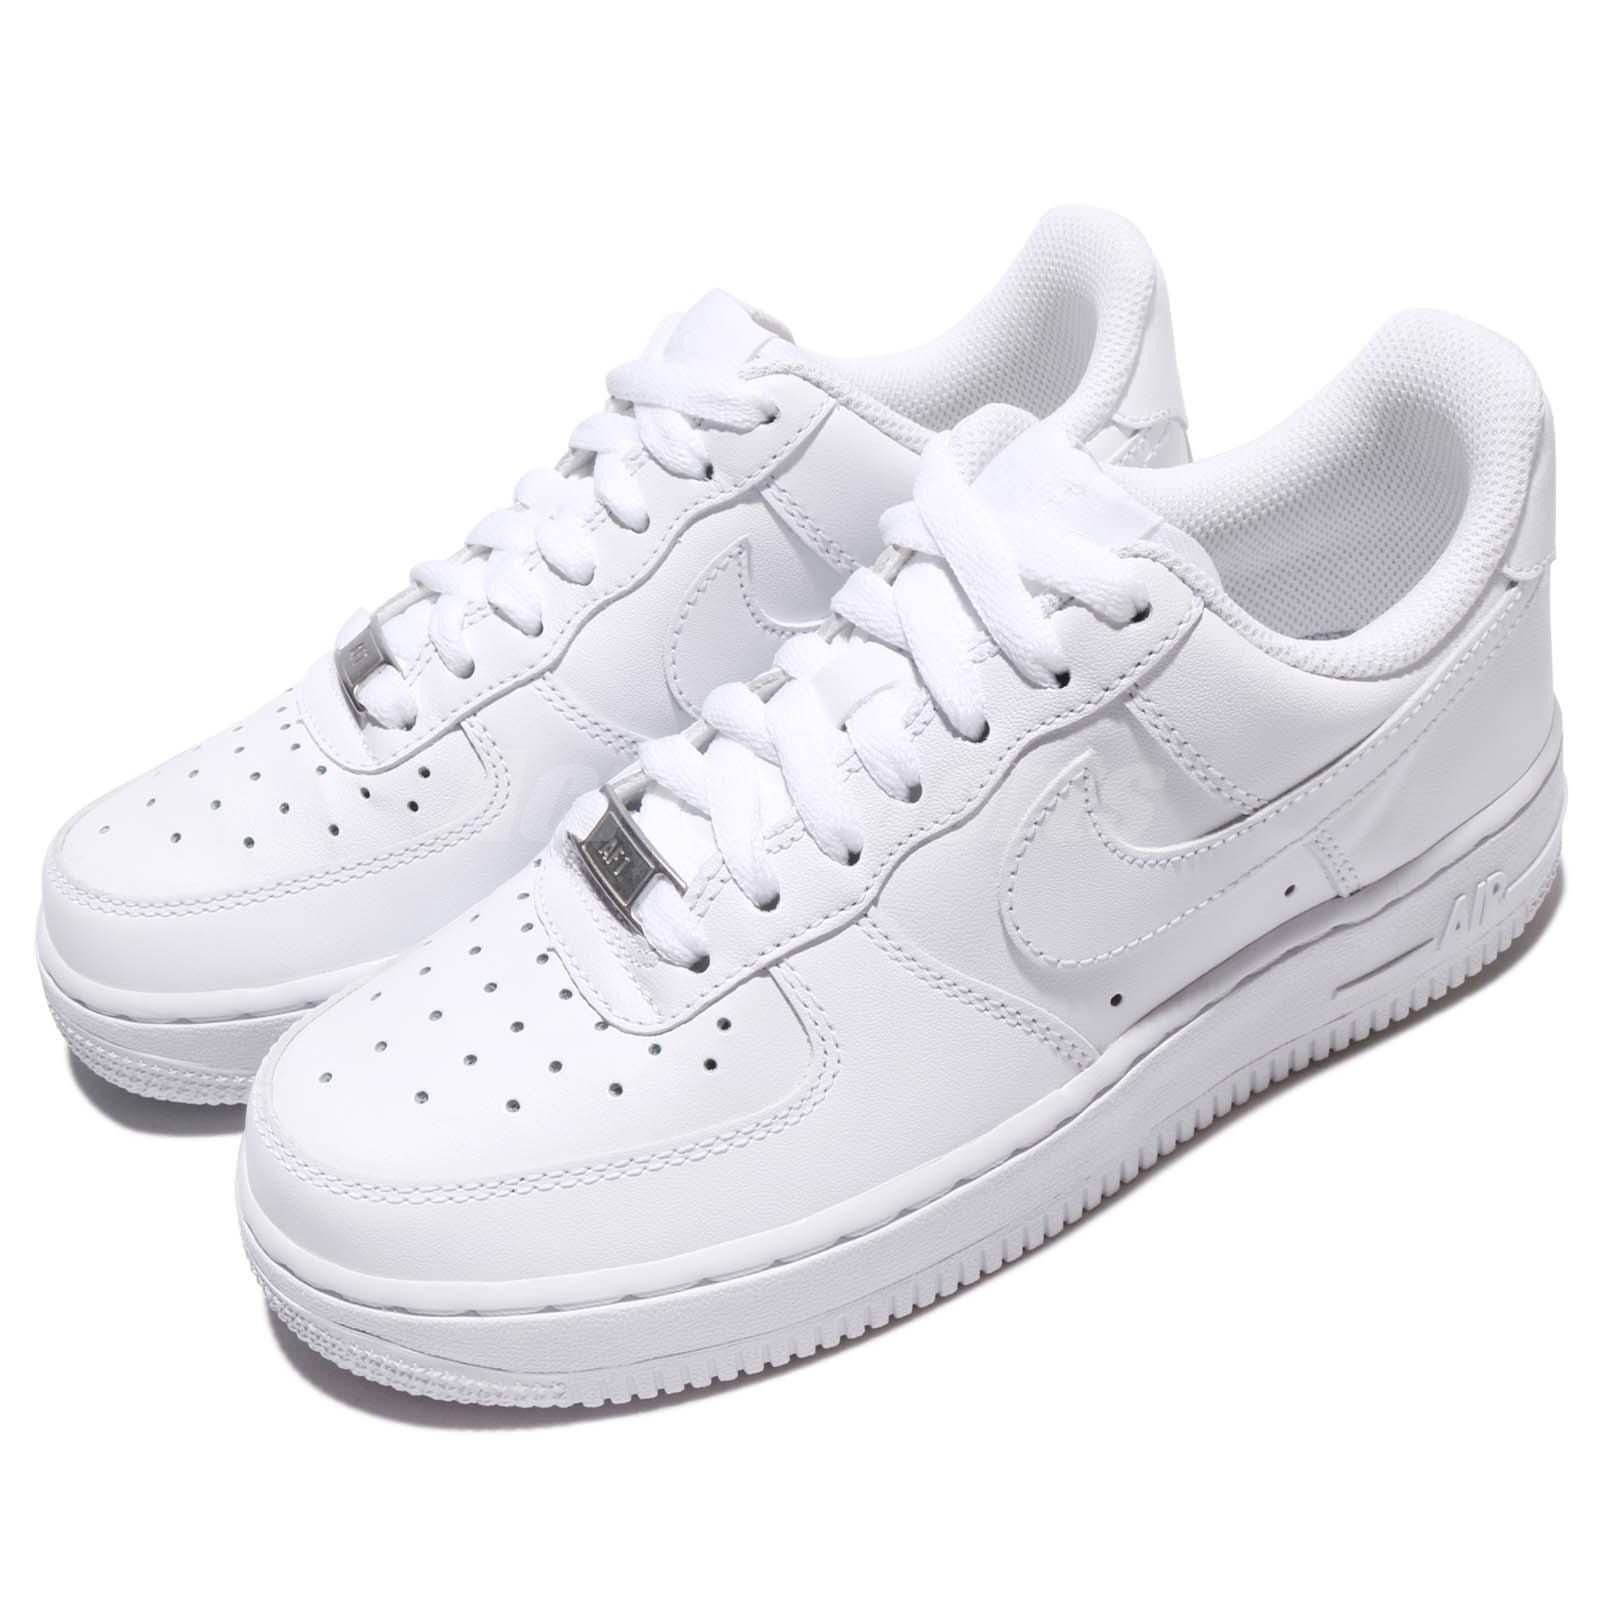 superior quality available huge inventory 104.99 | Wmns Nike Air Force 1 07 Whiteout Womens Classic ...